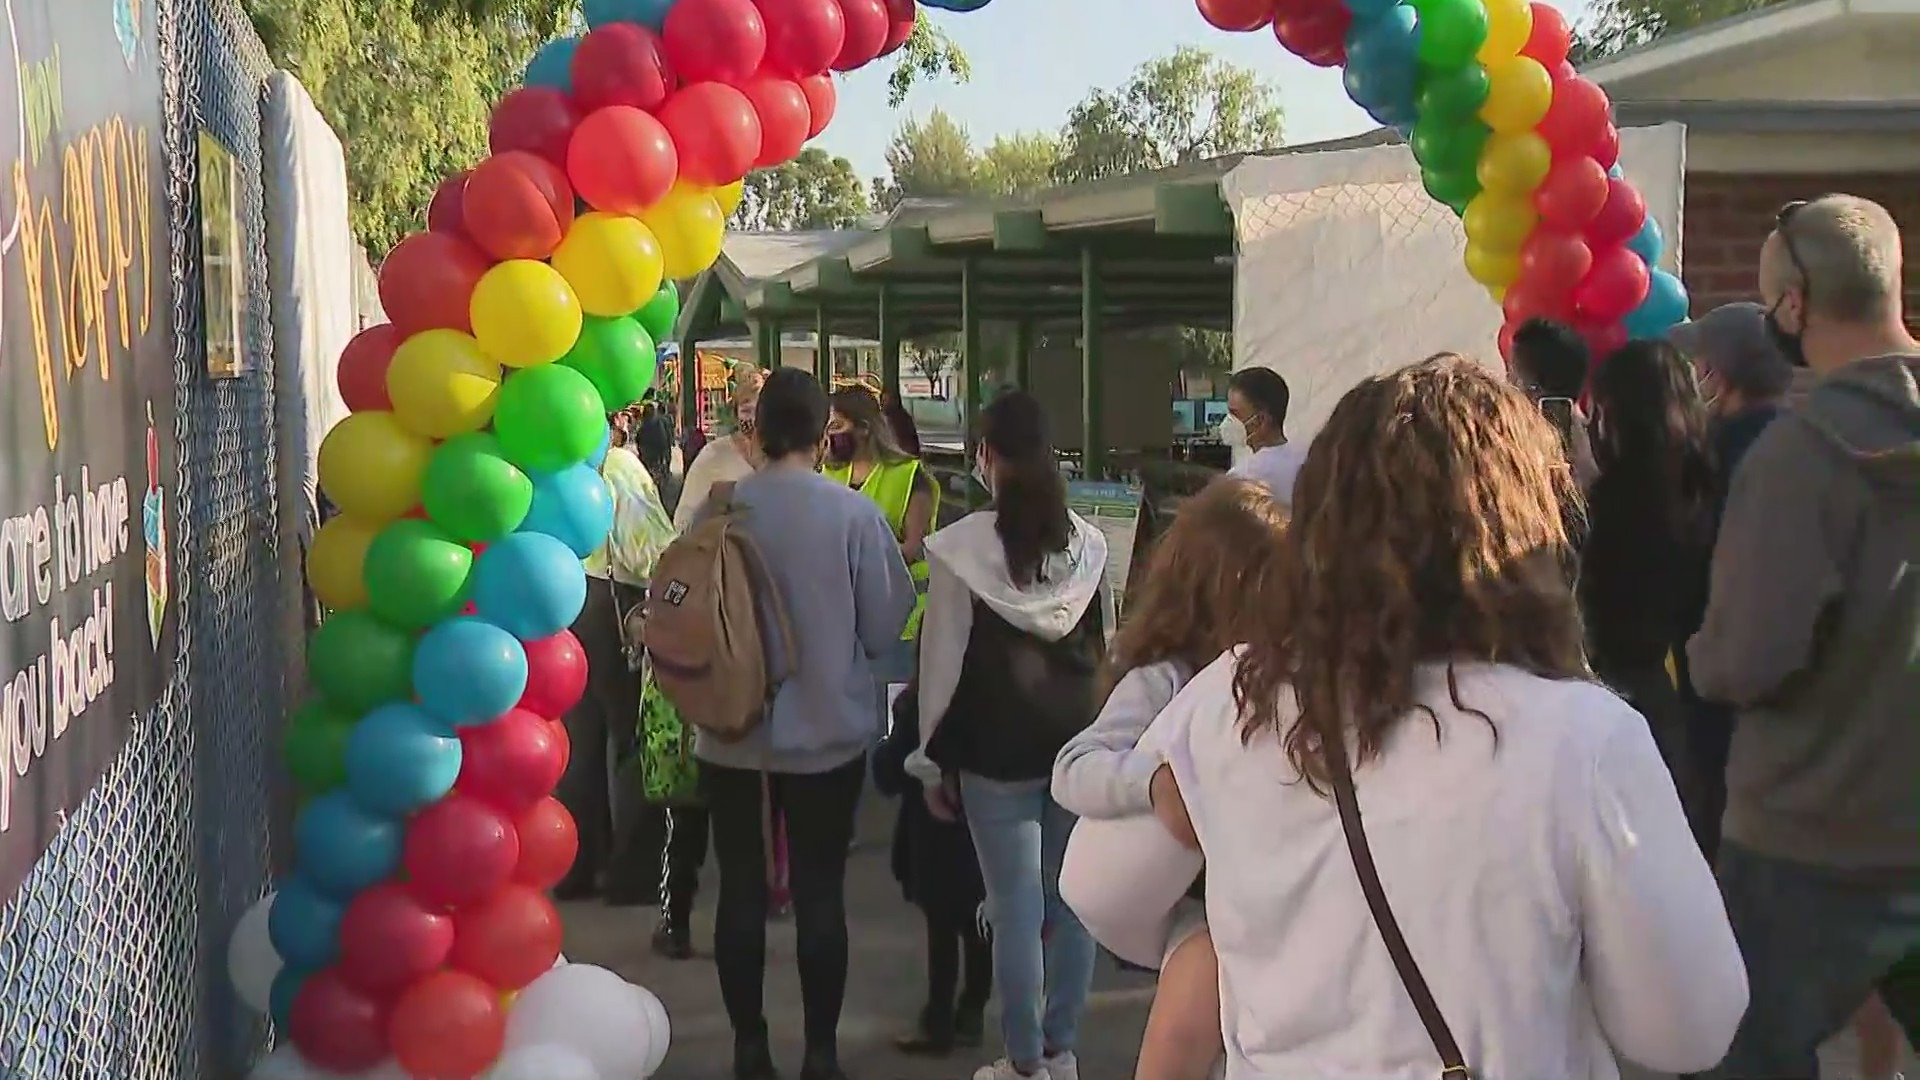 Parents and students arrive for the first day of classes at Encino Charter Elementary School on April 20, 2021. (KTLA)